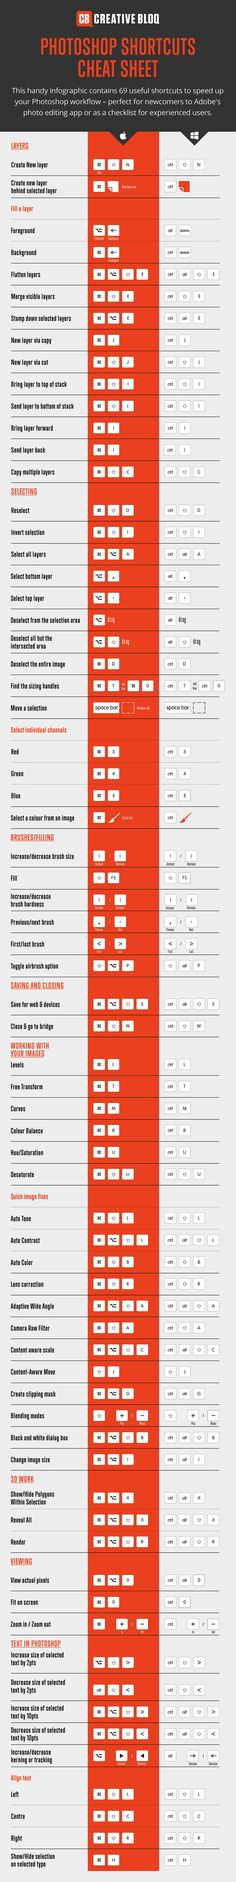 [INFOGRAPHIC] 69 incredibly useful Photoshop shortcuts—Our cheat sheet means you'll never be fumbling for Photoshop shortcuts again; Details>